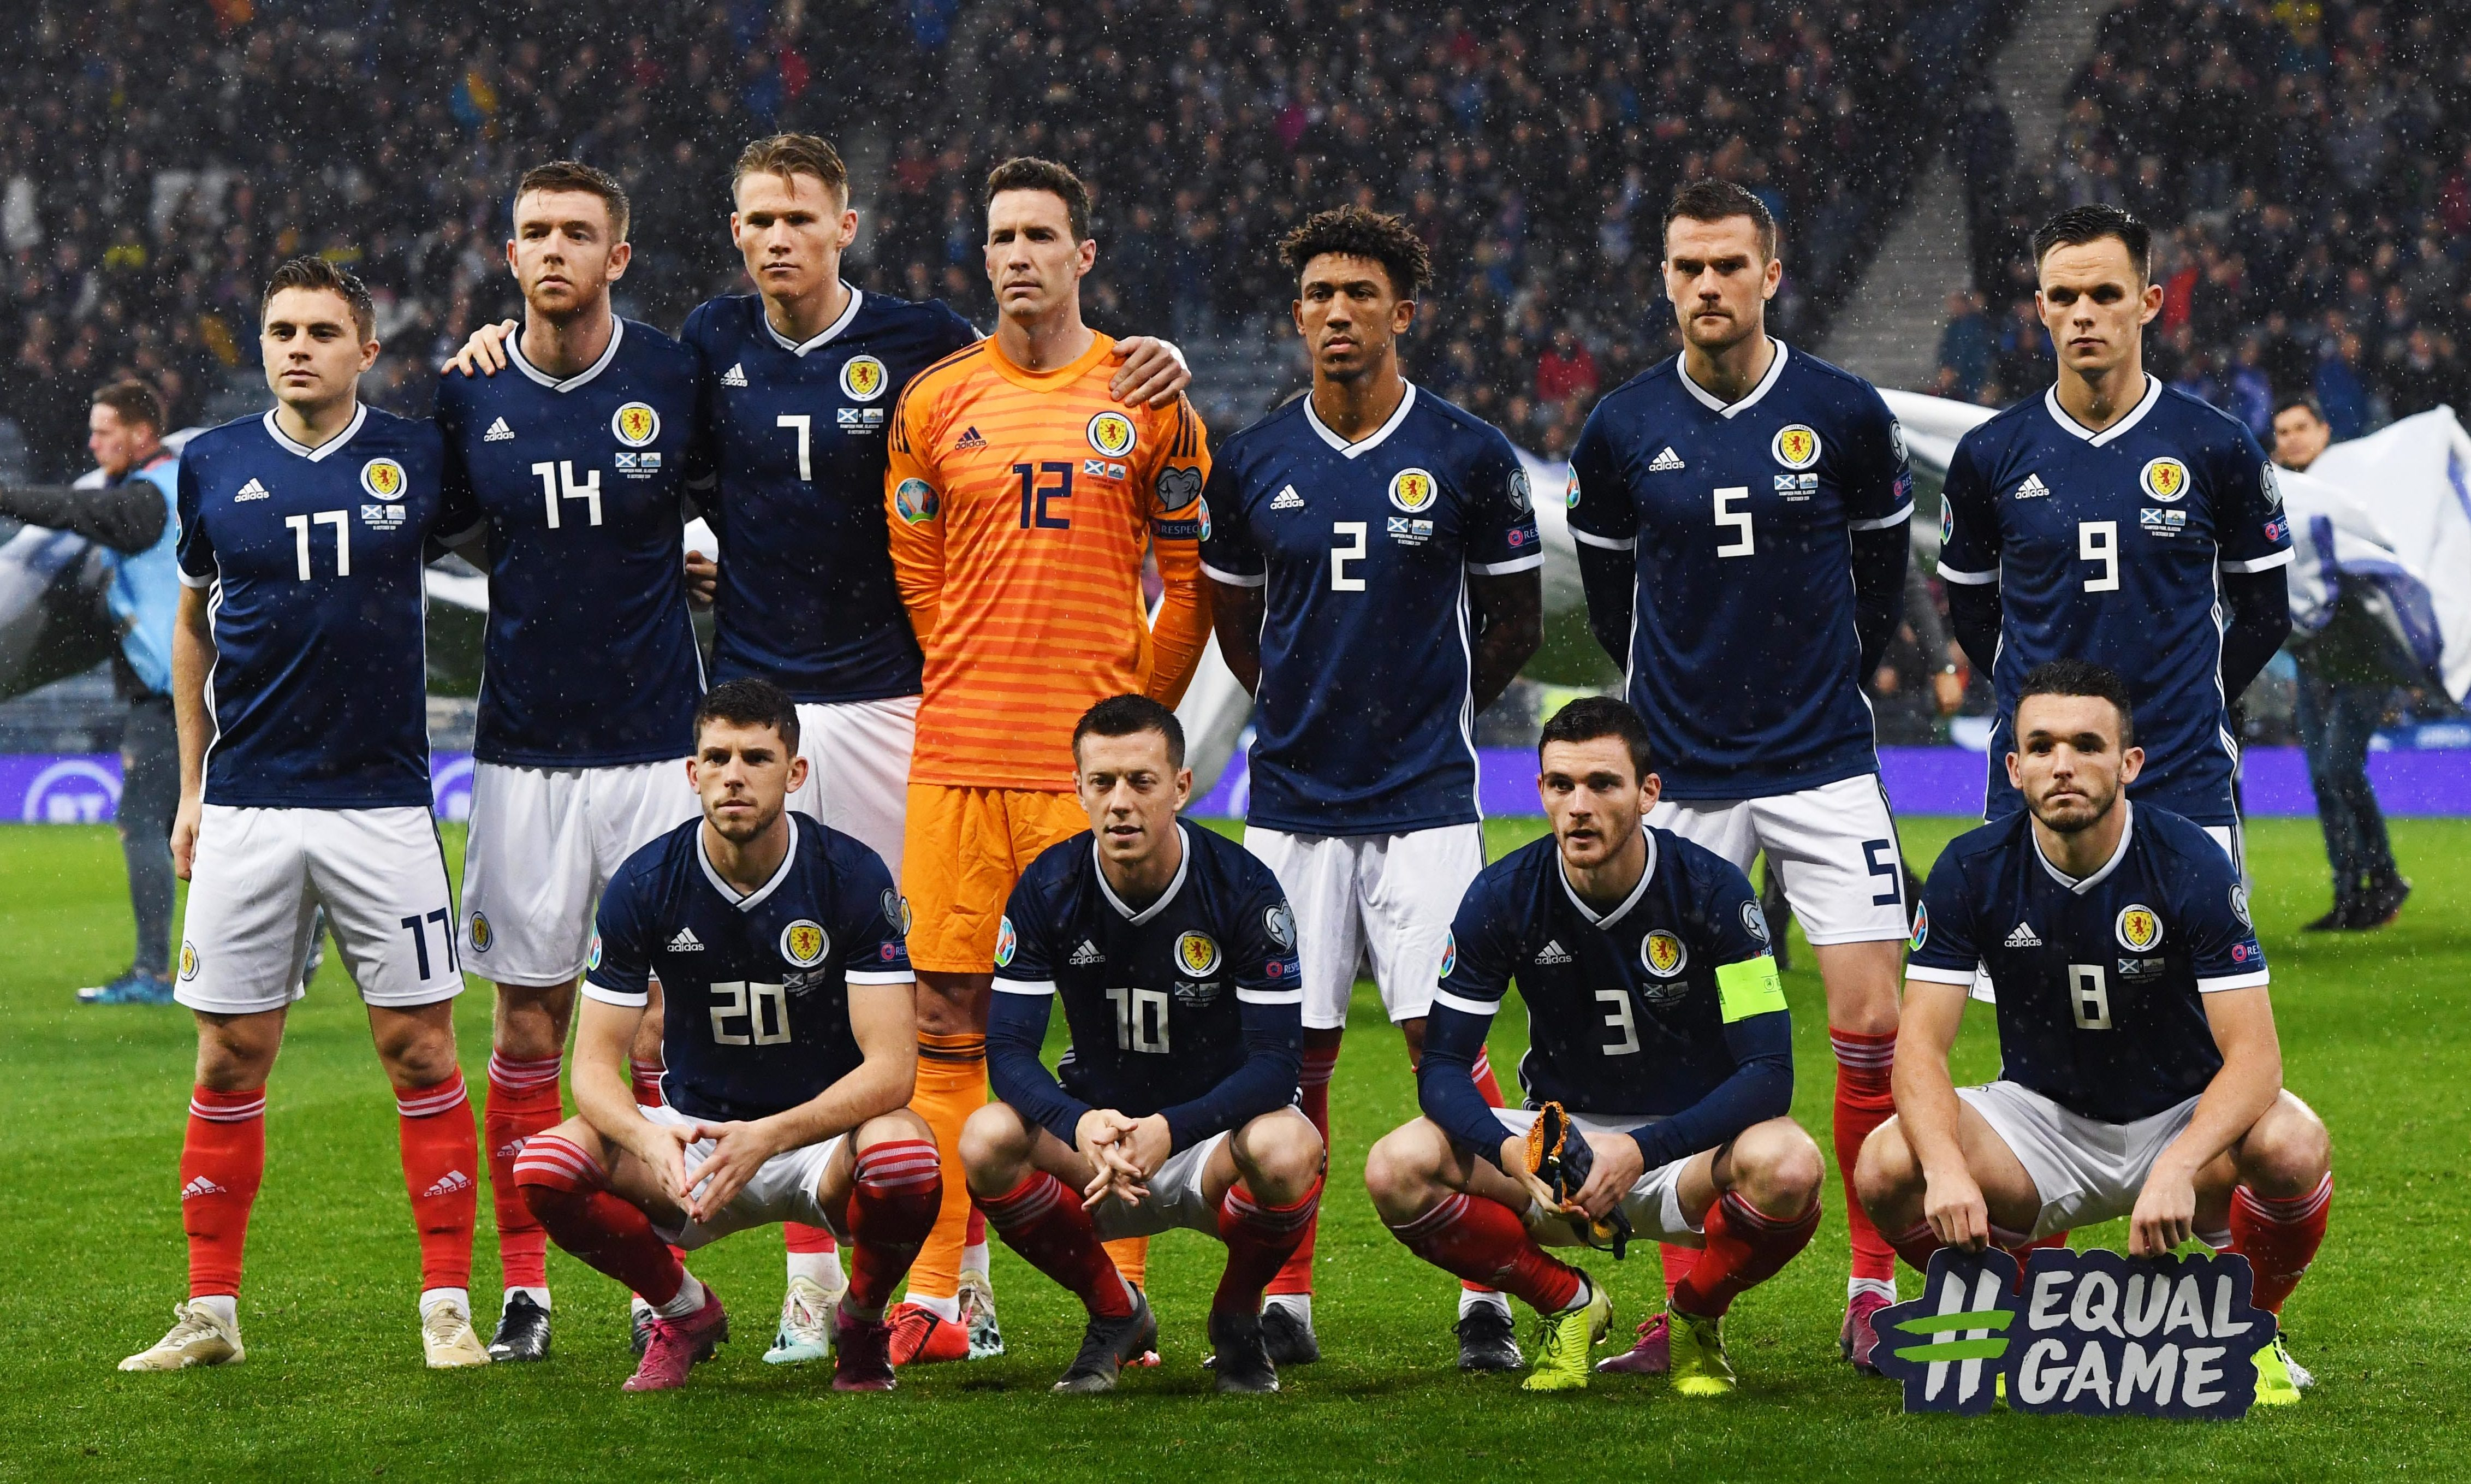 The Scotland team are pictured ahead of the UEFA European qualifier.